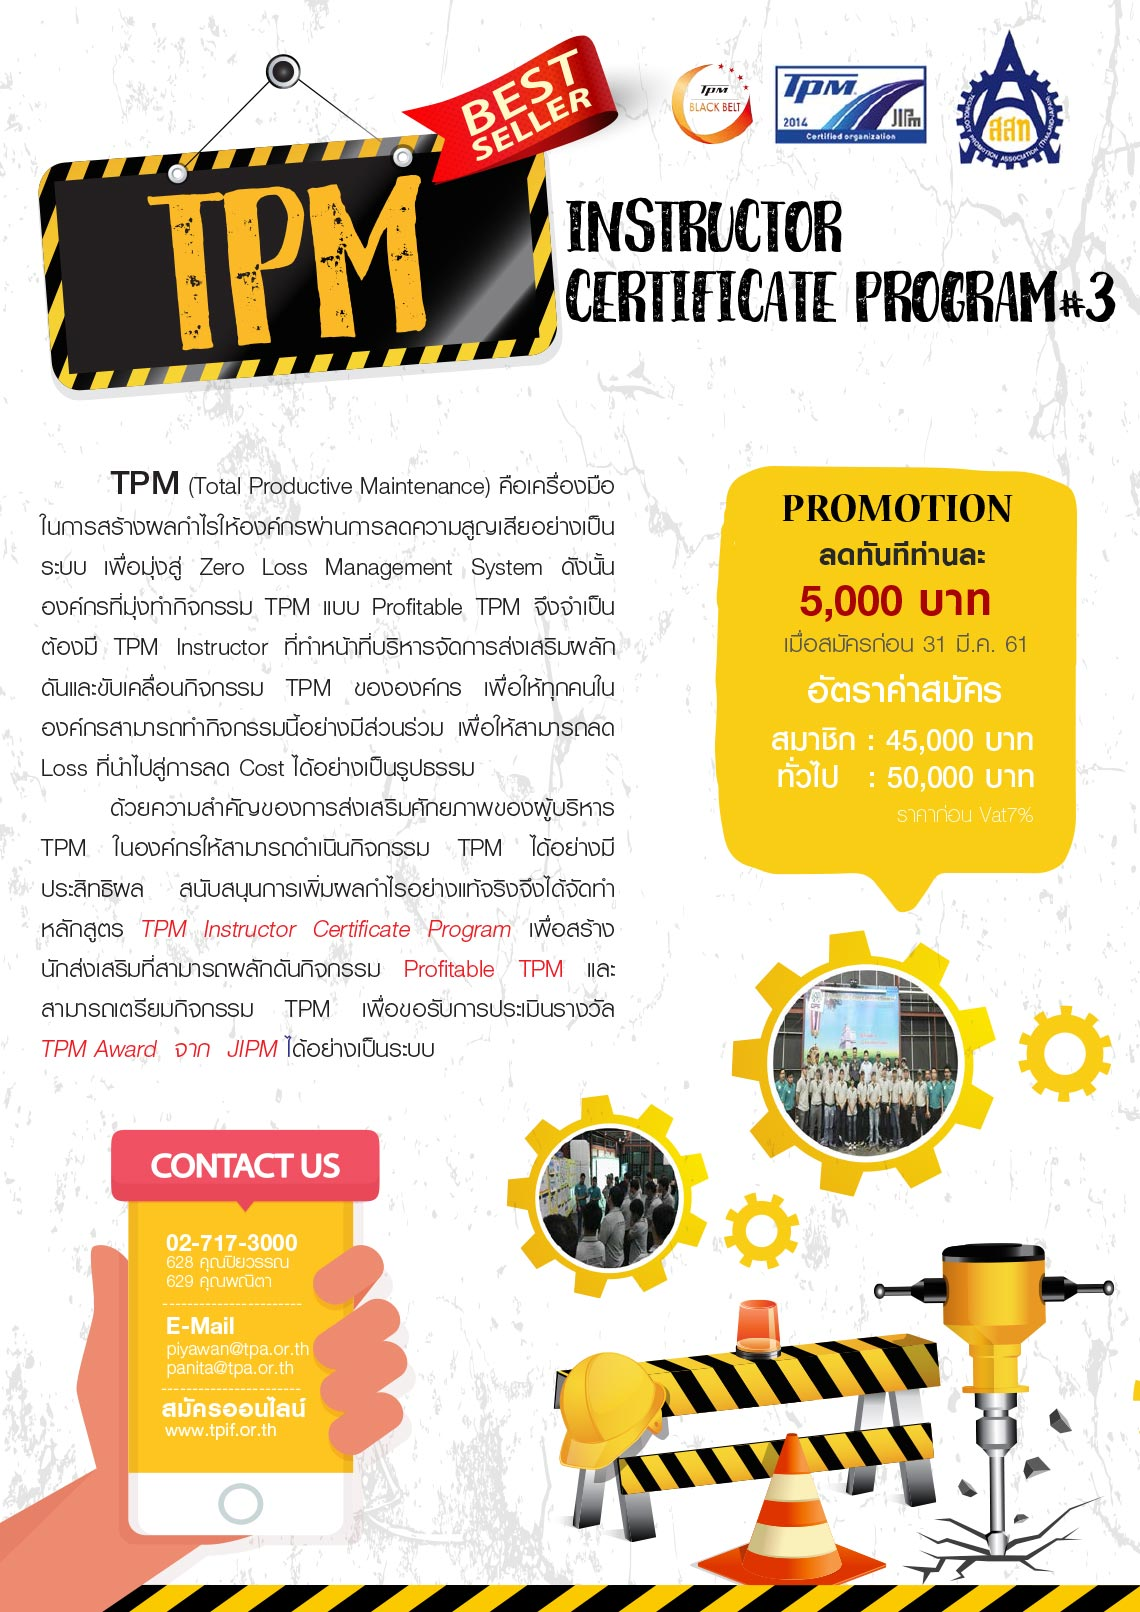 TPM Instructor Certificate Program